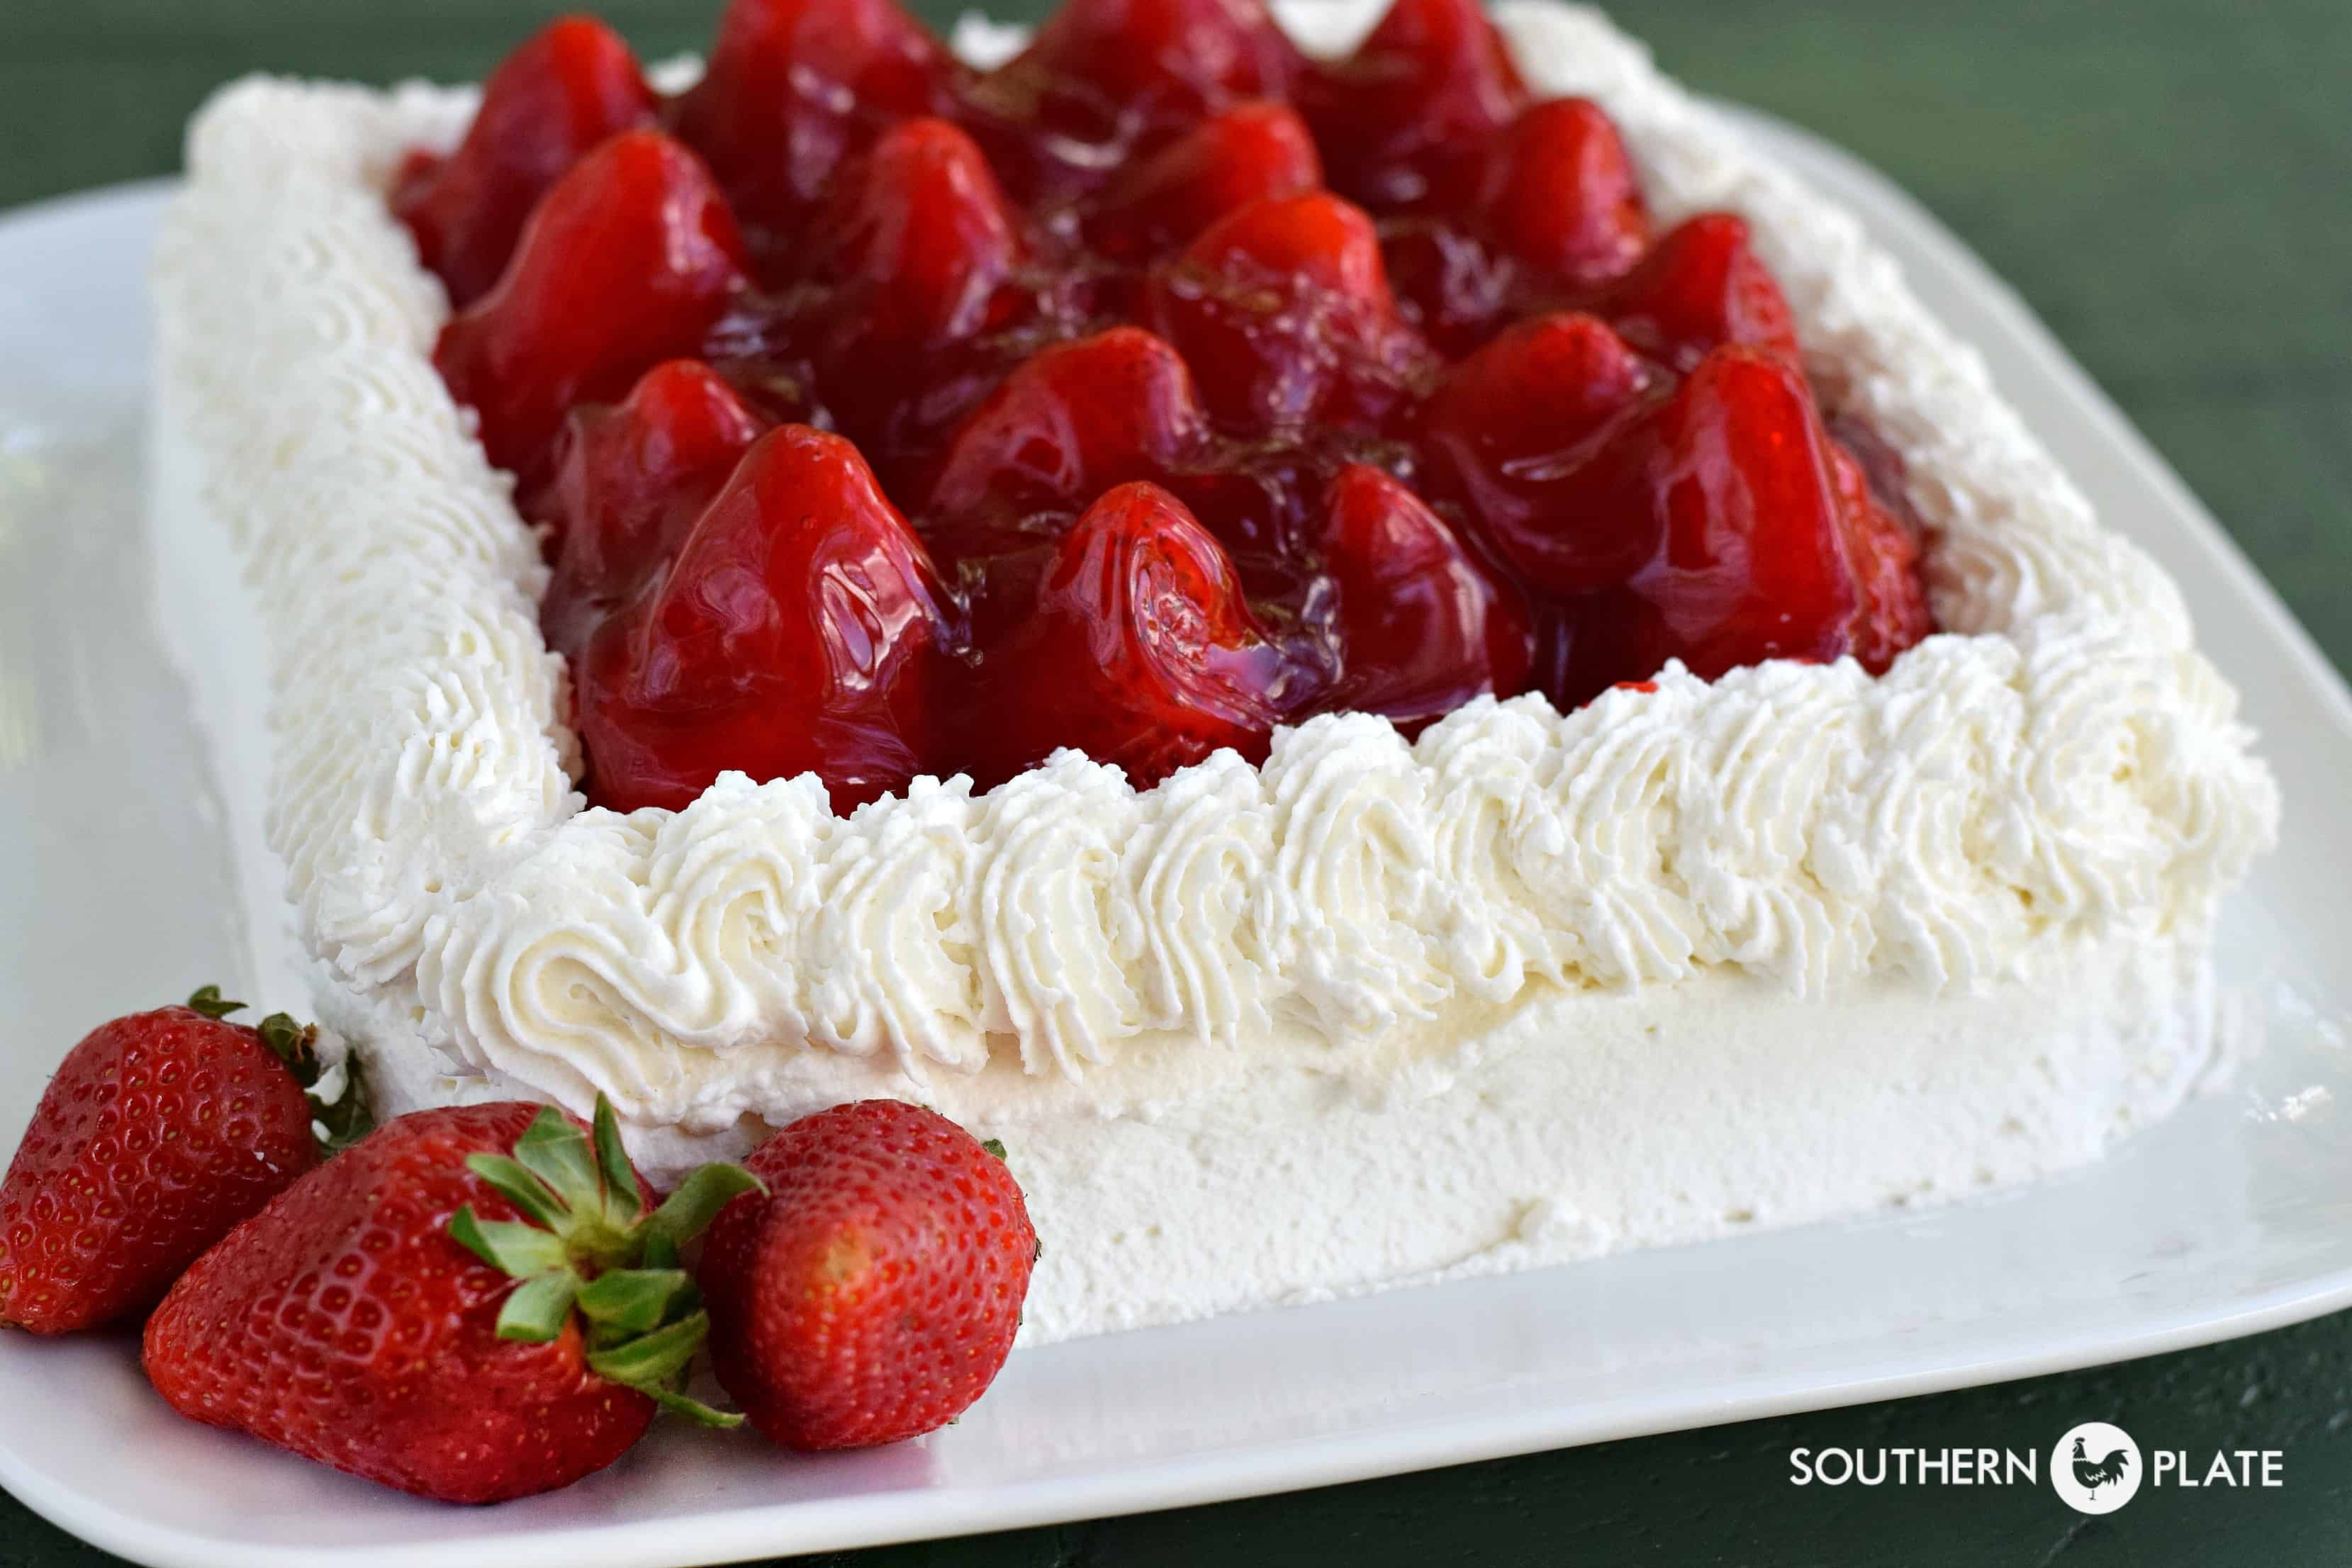 That Strawberry Cake Southern Plate